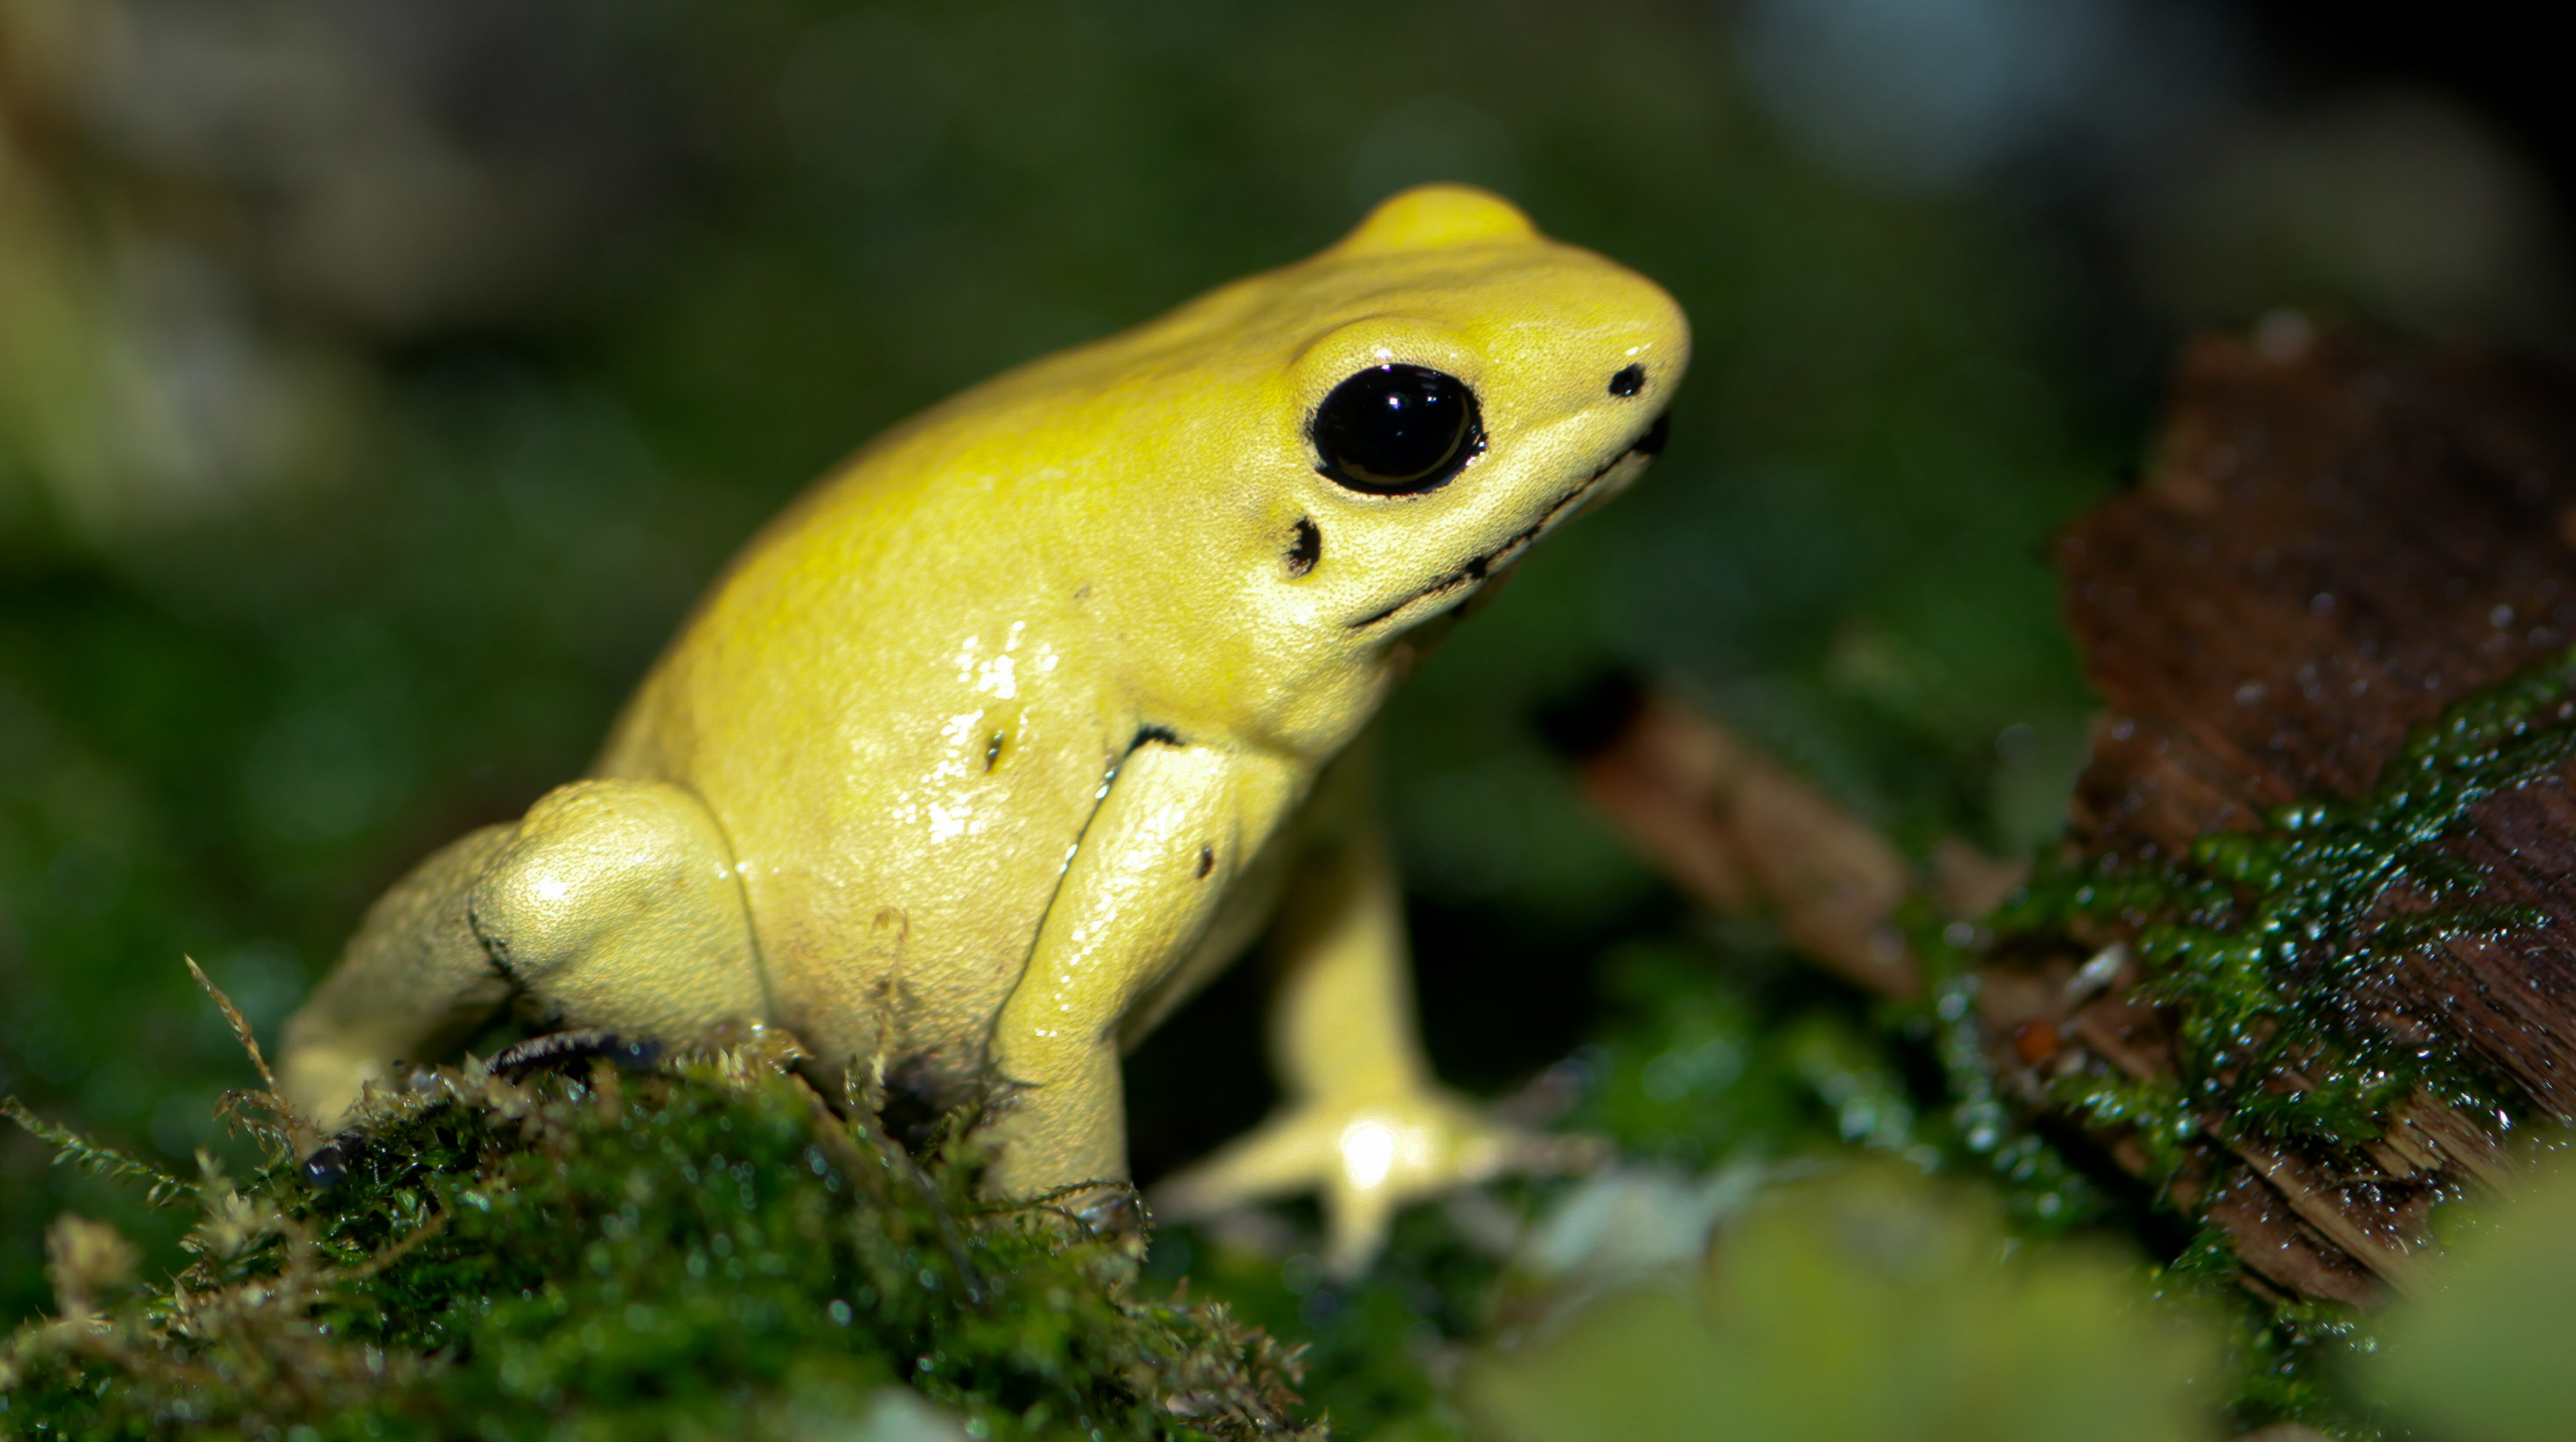 Golden dart frog habitat - photo#14